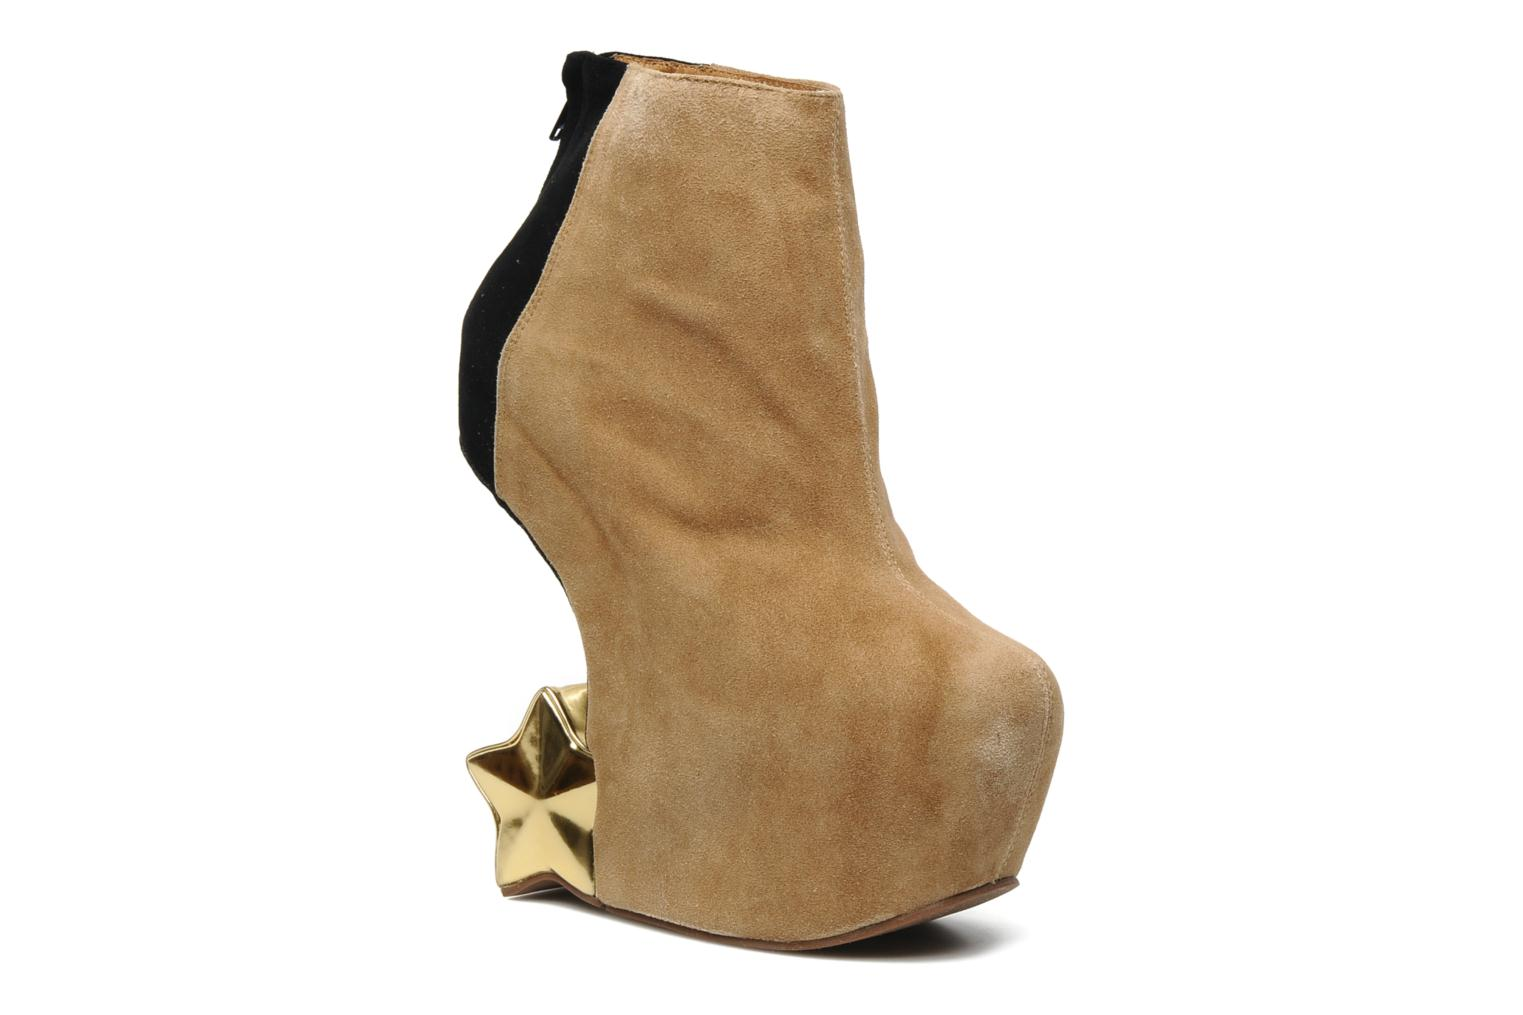 Jeffrey Campbell NITEMATE (WITH GOLD STAR) (Beige) - Bottines et boots chez Sarenza (108886)